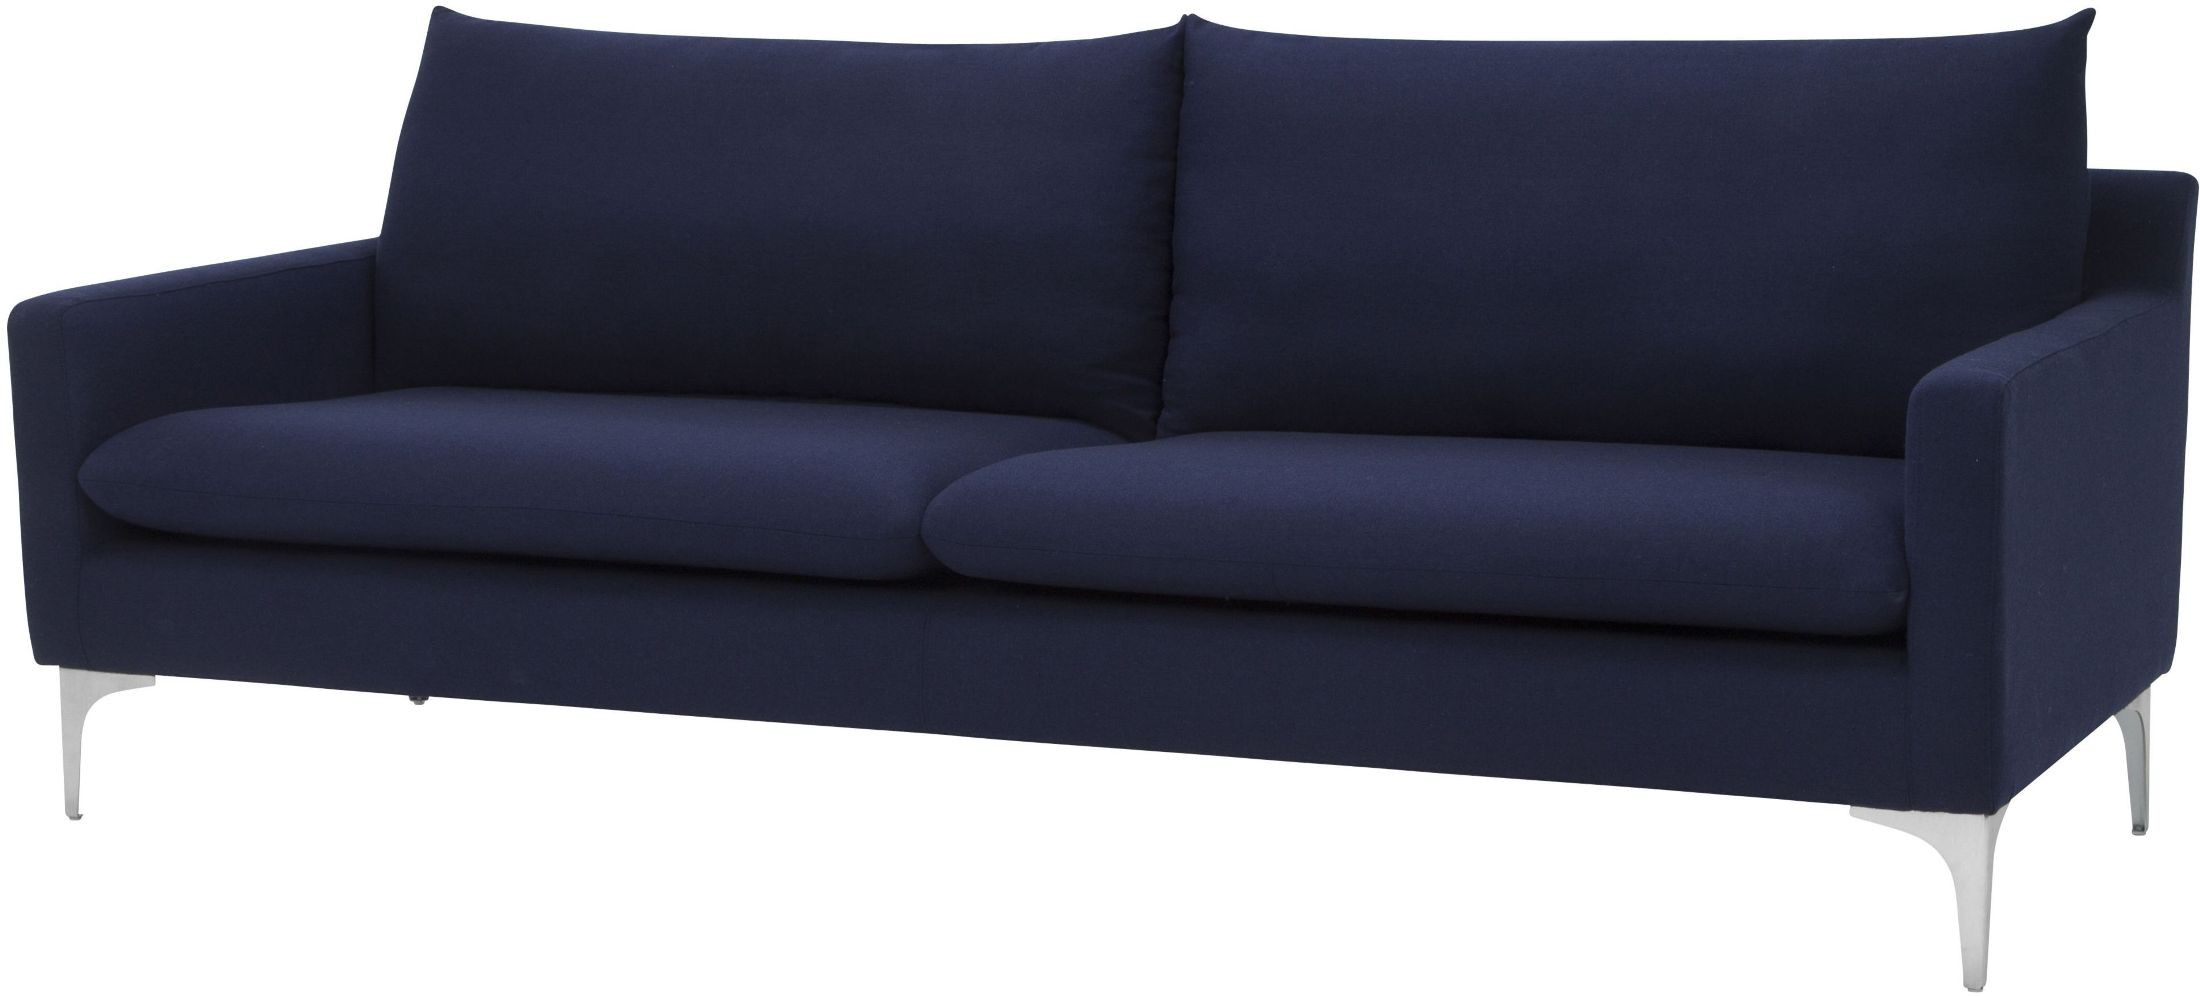 Anders Navy Blue Sofa From Nuevo Coleman Furniture